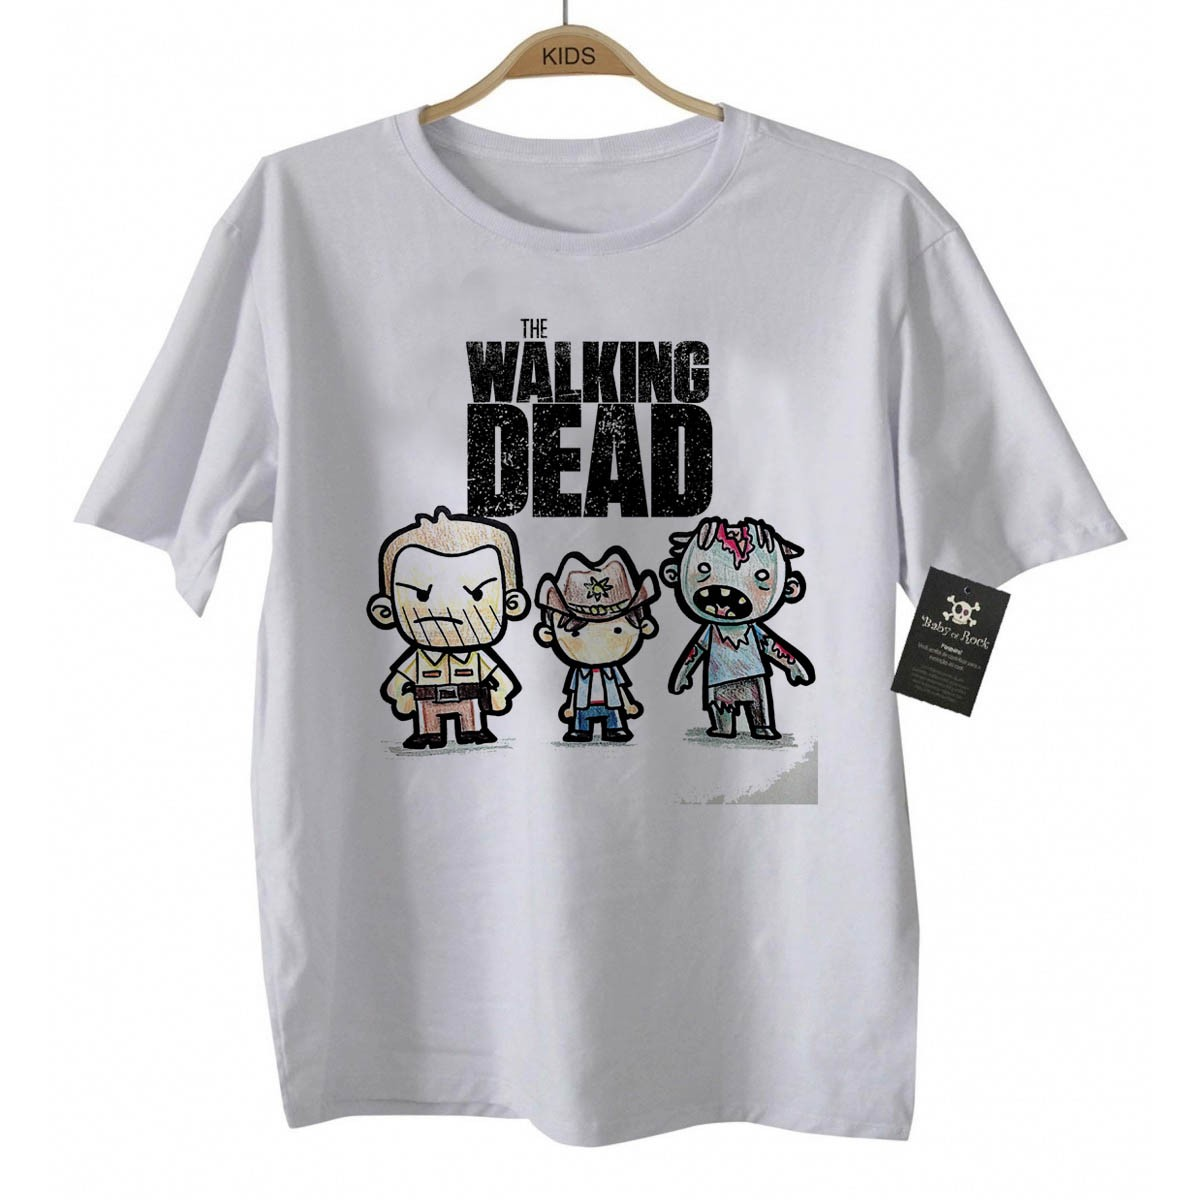 Camiseta Infantil Série - The Walking Dead - White  - Baby Monster - Body Bebe